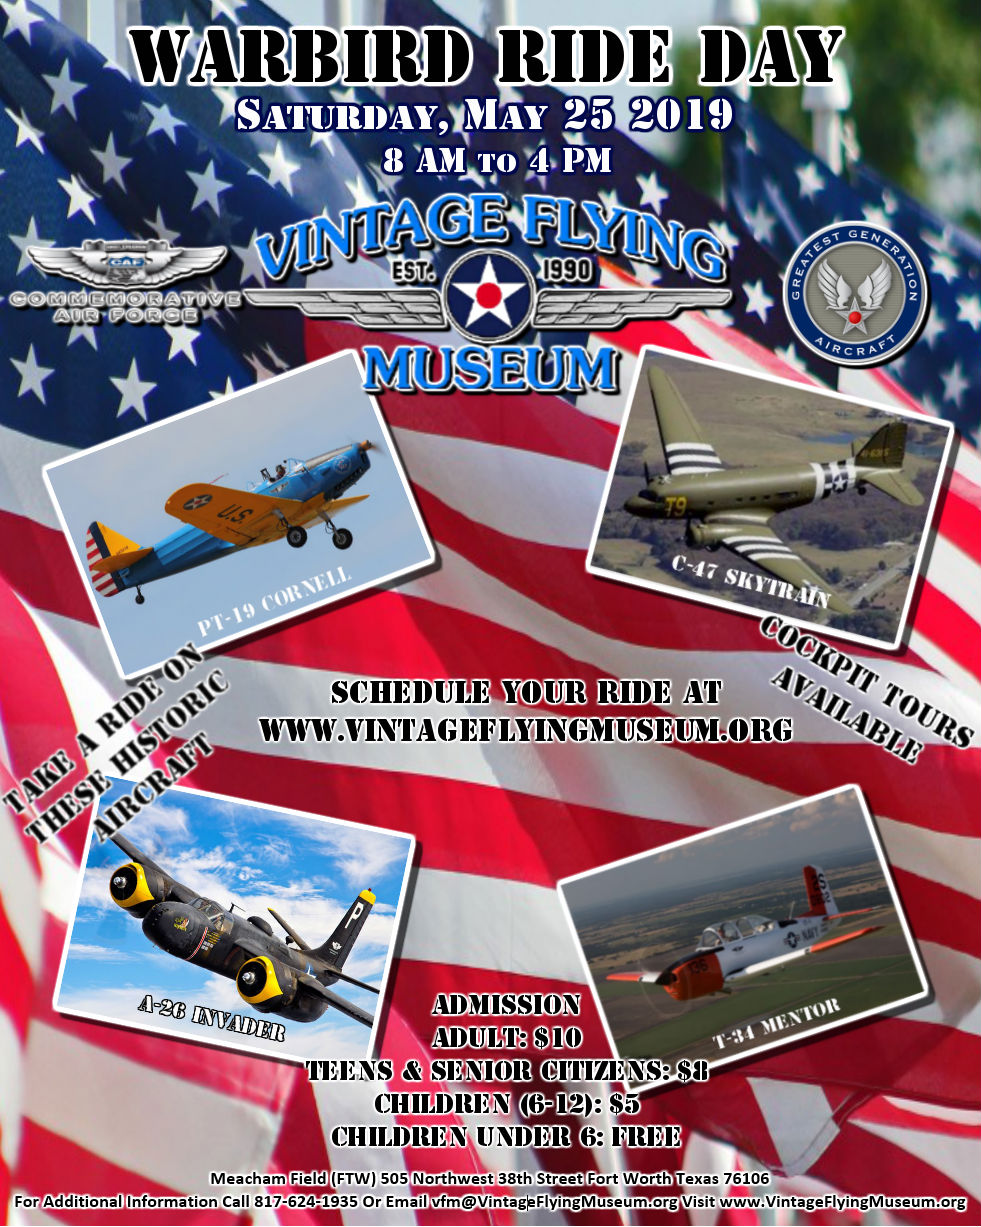 2019-Memorial-Day-ride-day-flyer.jpg?time=1619543912